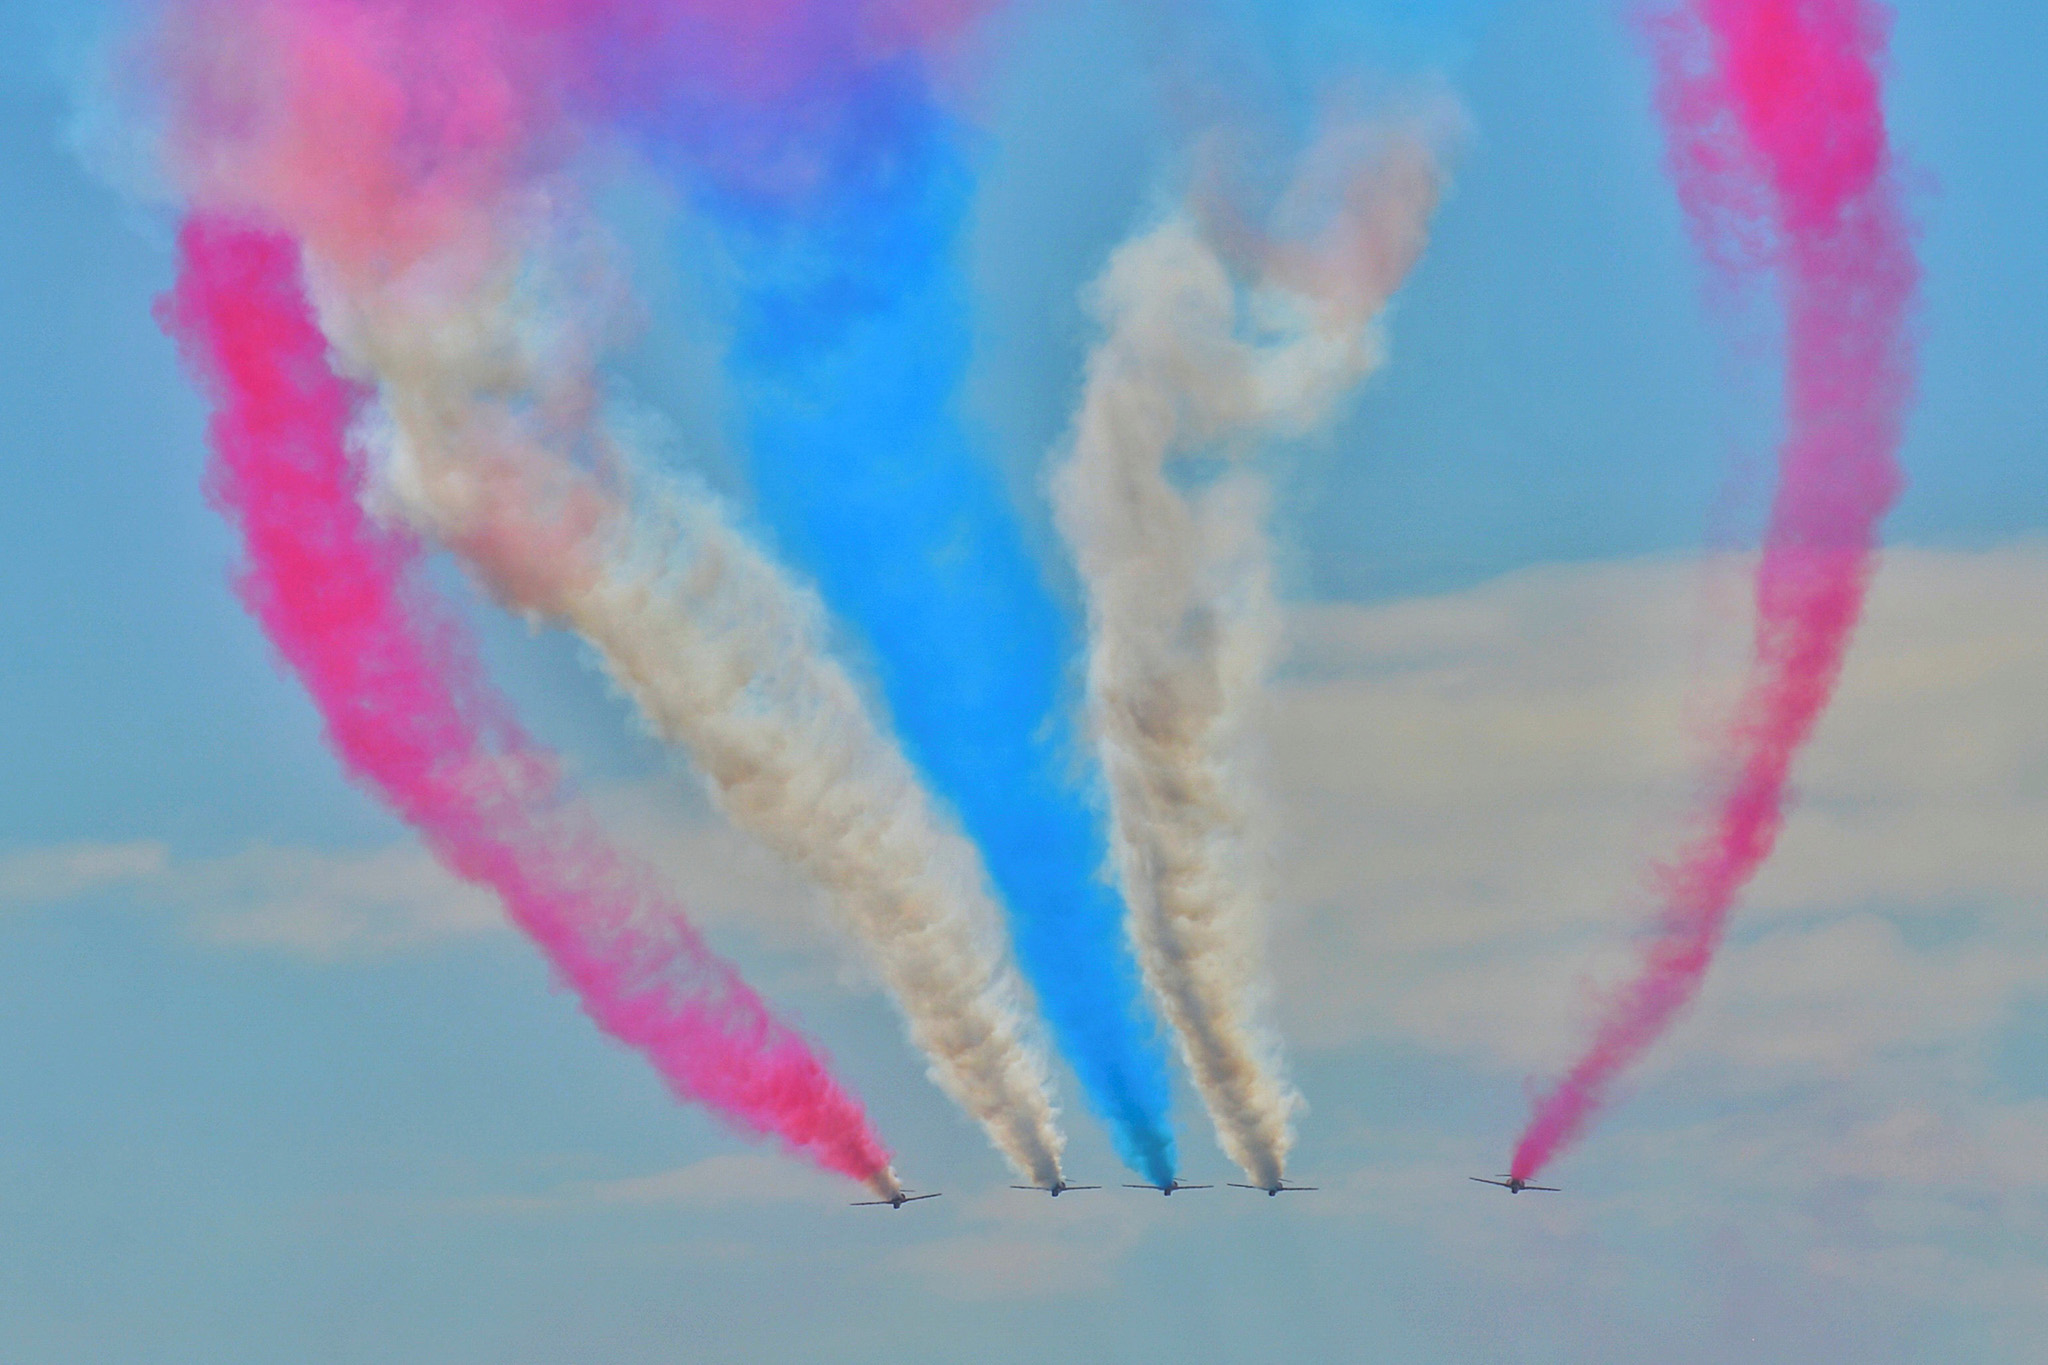 Britain's Red Arrows flying display team perform ahead of the China International Aviation and Aerospace Exhibition in Zhuhai, Guangdong province, China, October 27, 2016. China Daily/via REUTERS ATTENTION EDITORS